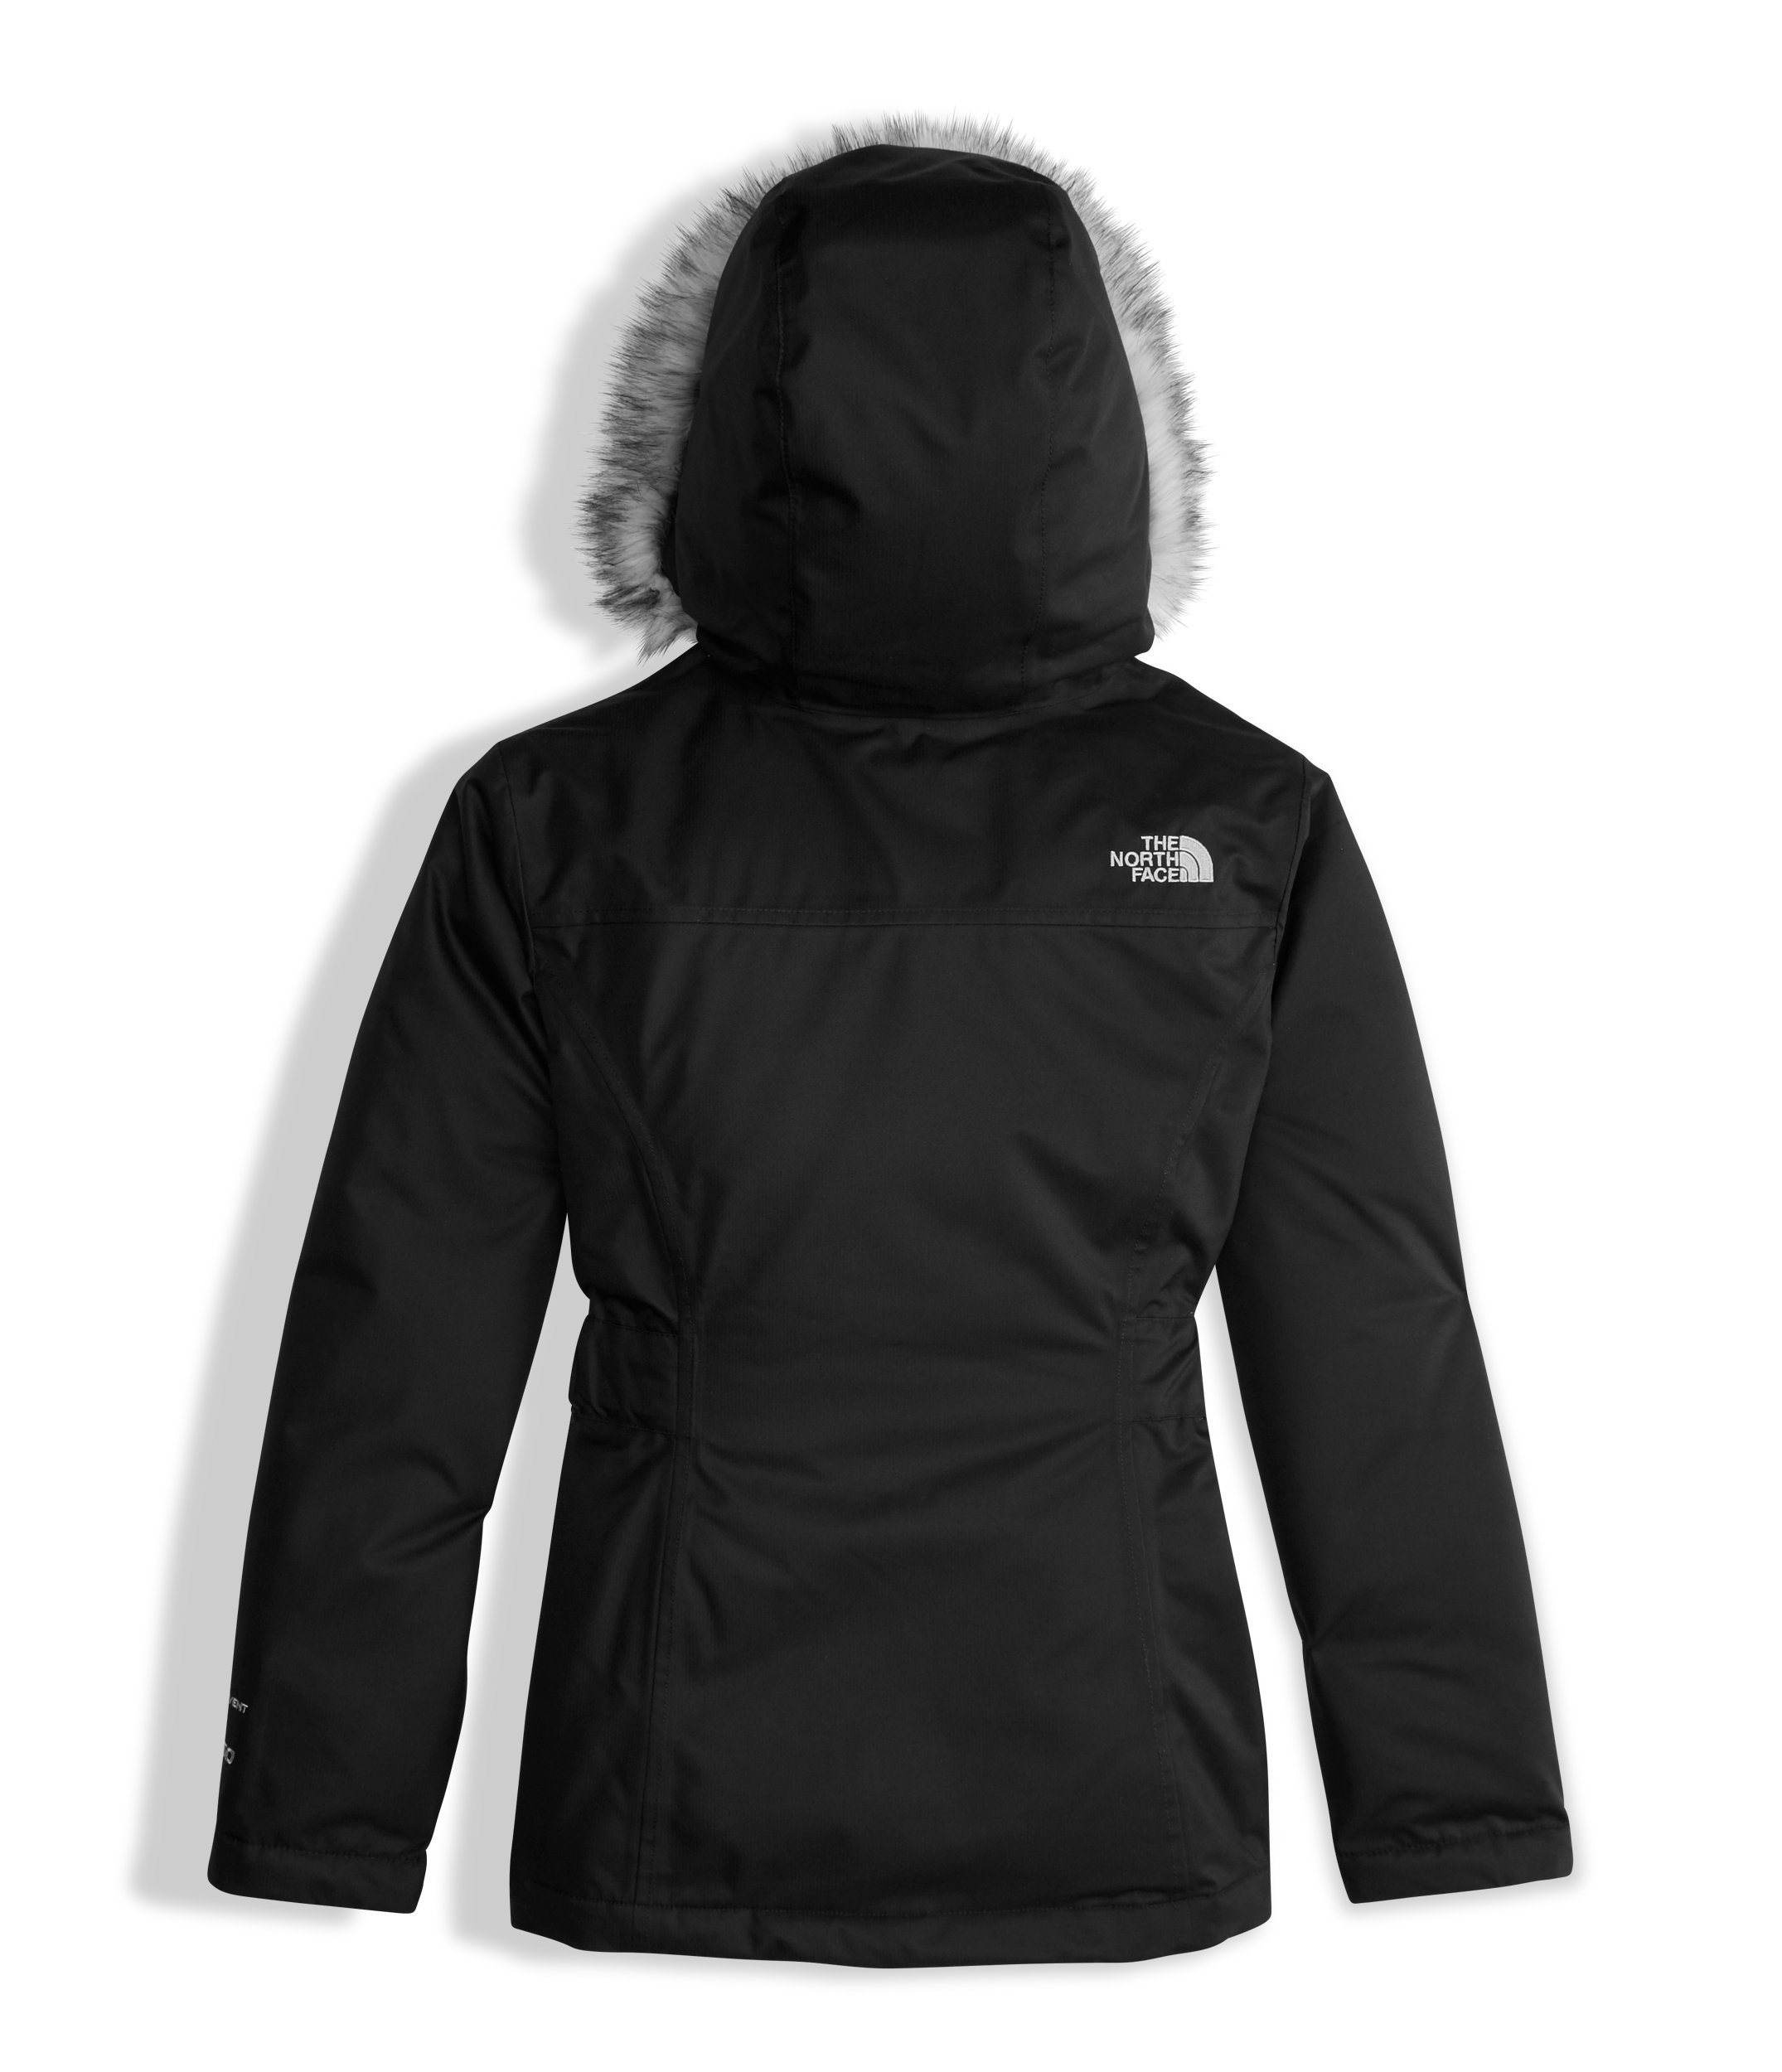 The North Face Girl's Greenland Down Parka - Black - S (Past Season) by The North Face (Image #2)